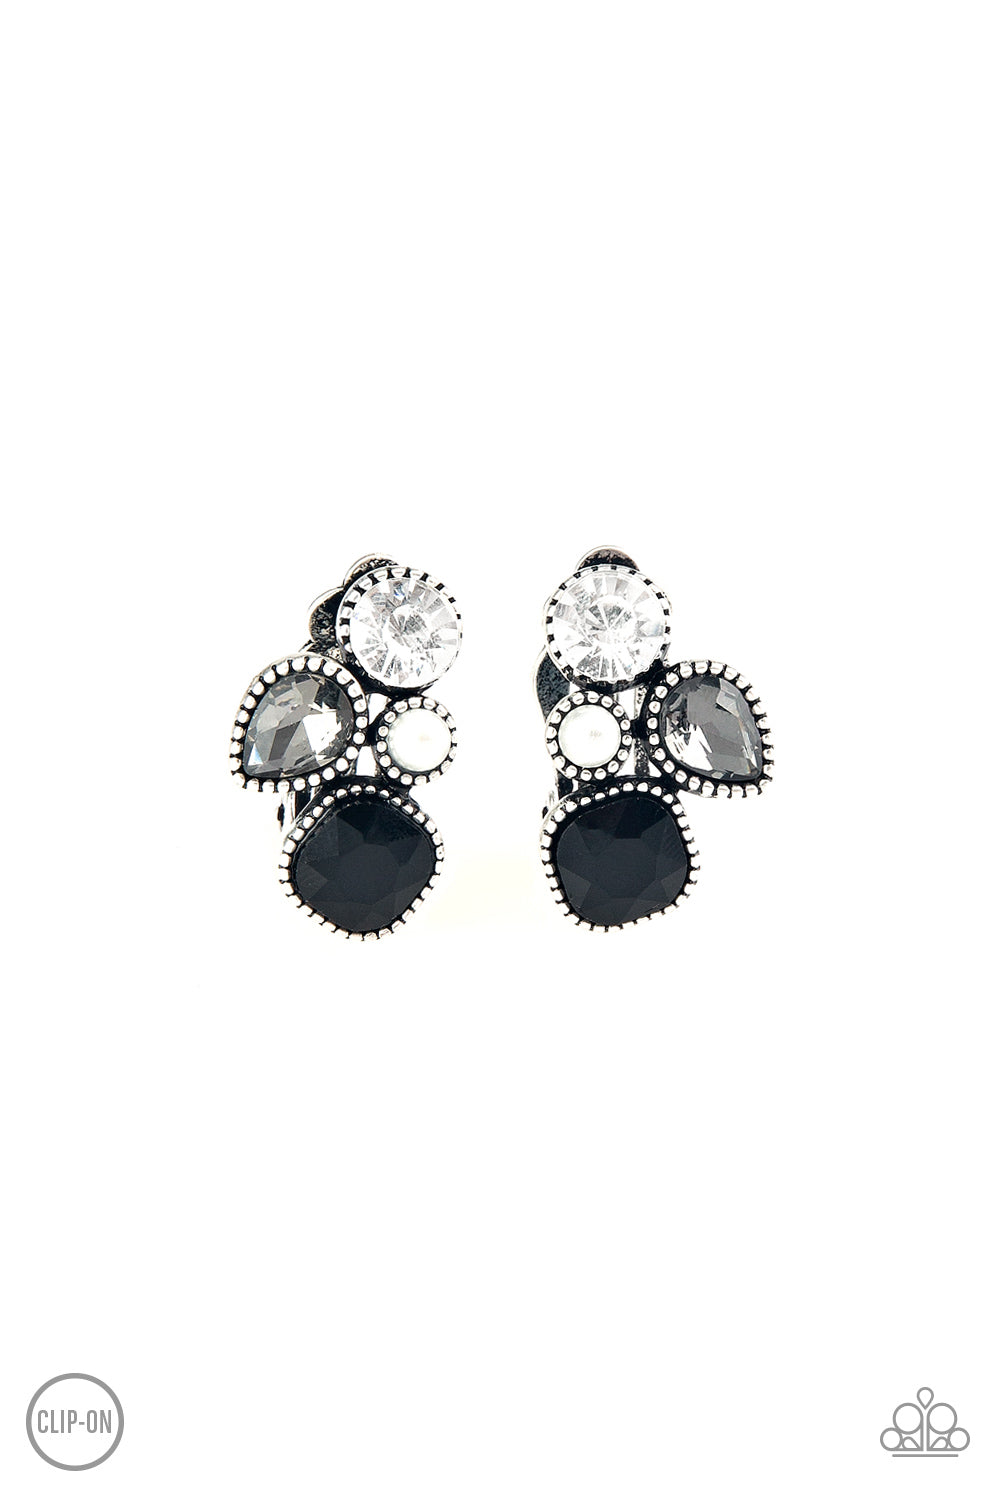 Super Superstar - Black Earrings - Paparazzi accessories - The Bling Peddler